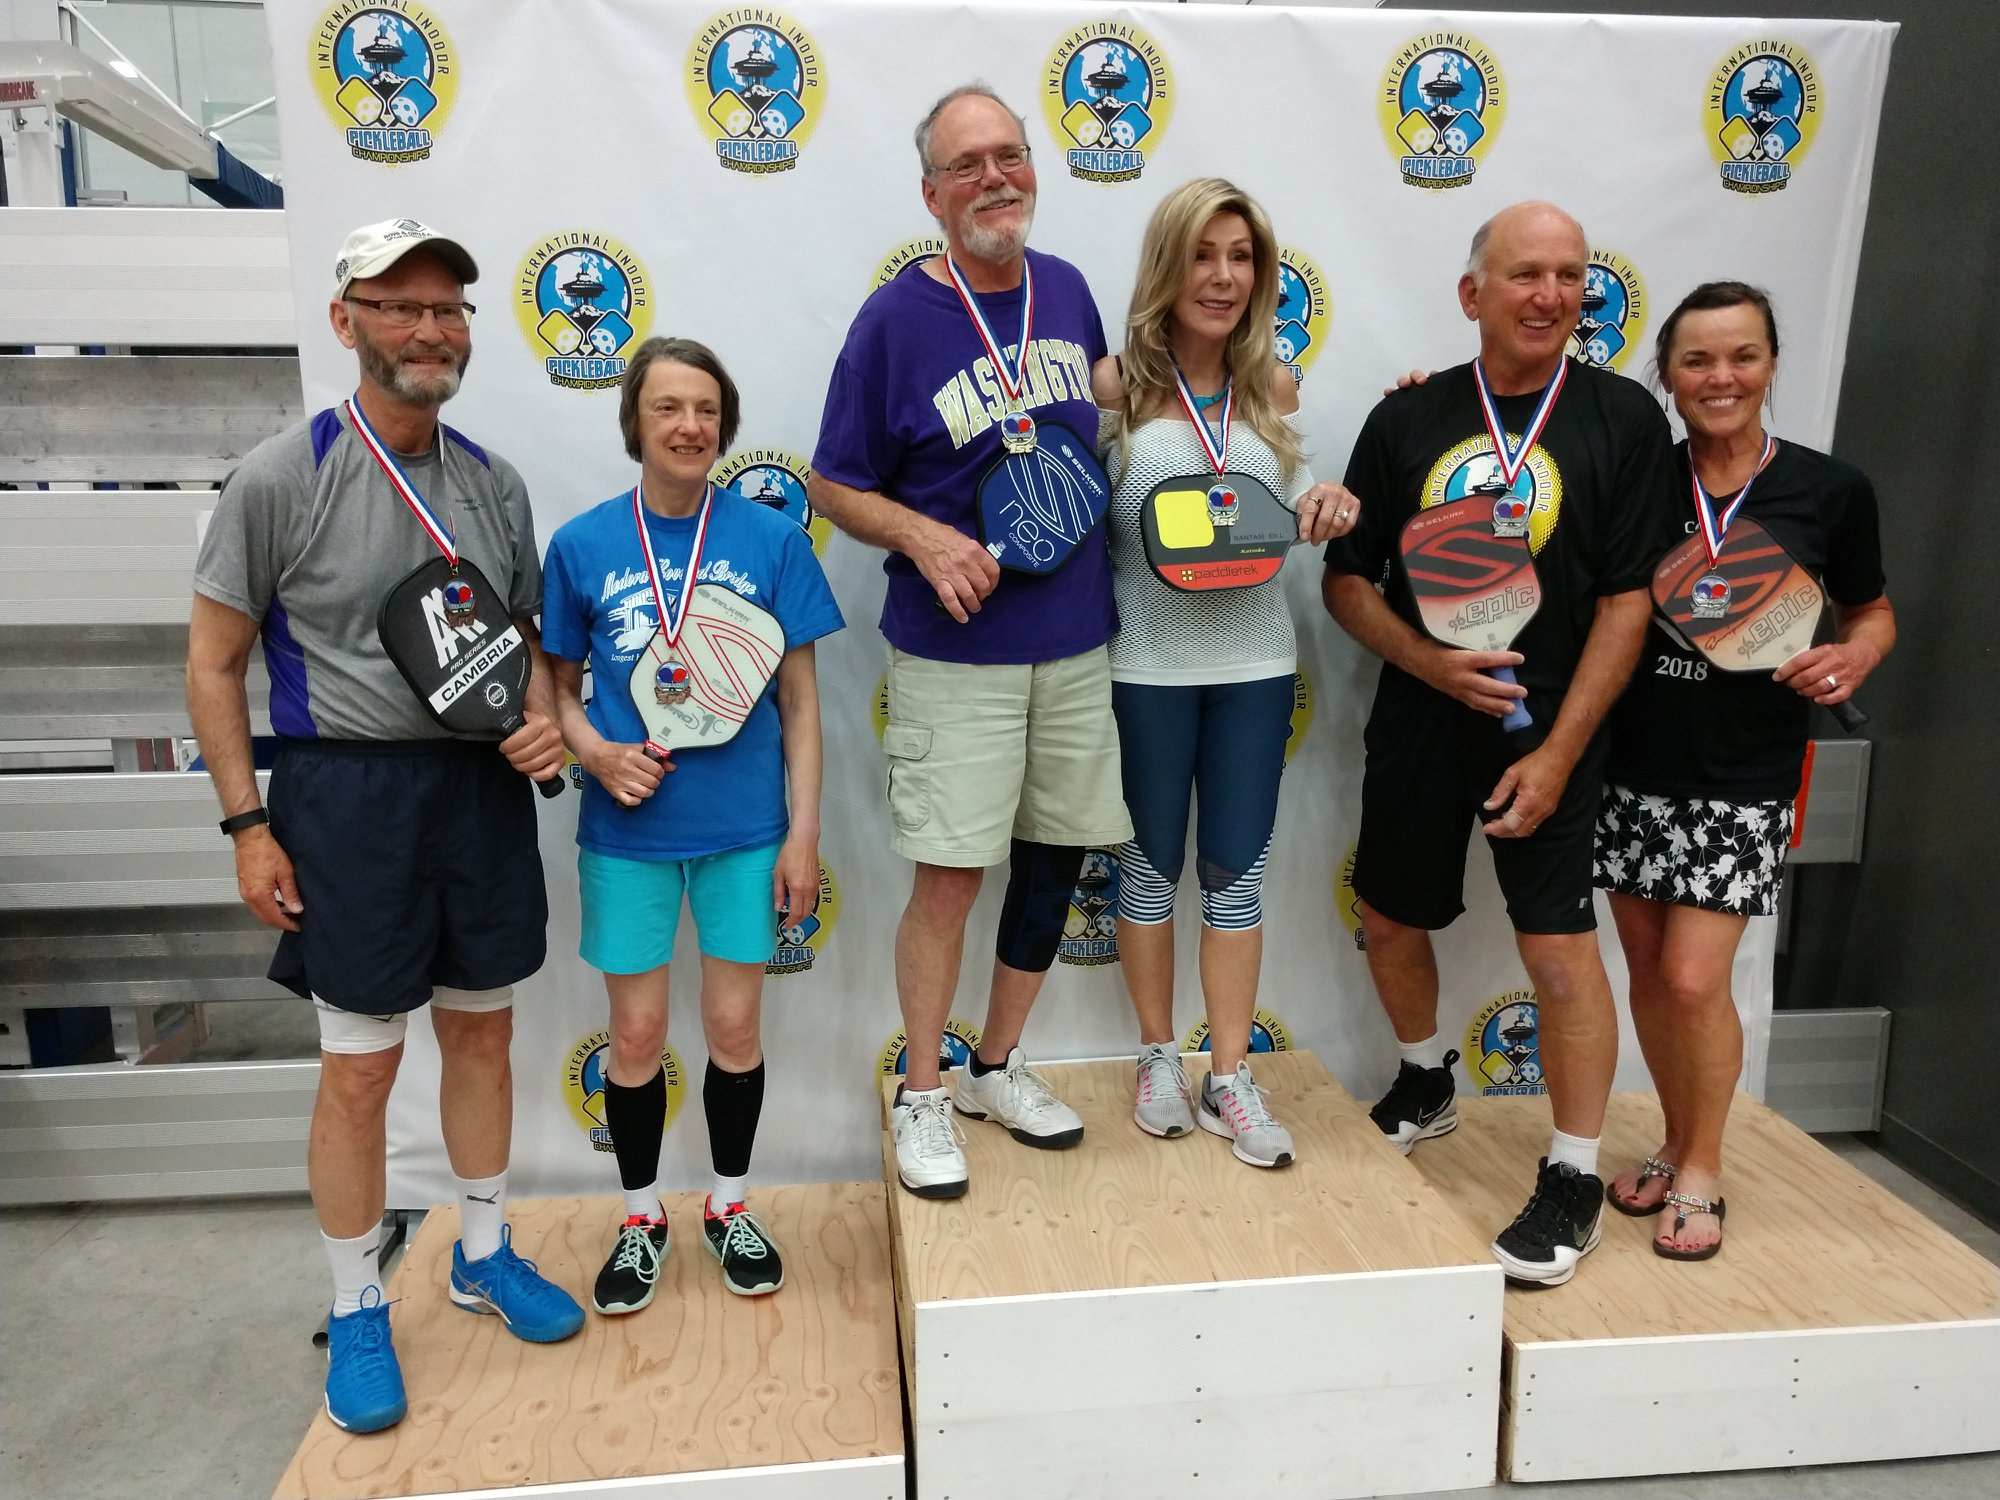 Mixed Doubles 3.0, 60+Katinka Nanna/Richard Cary - GoldSharman Owings/Gary Poor - SilverPam Woodruff/Jim Deckman - Bronze